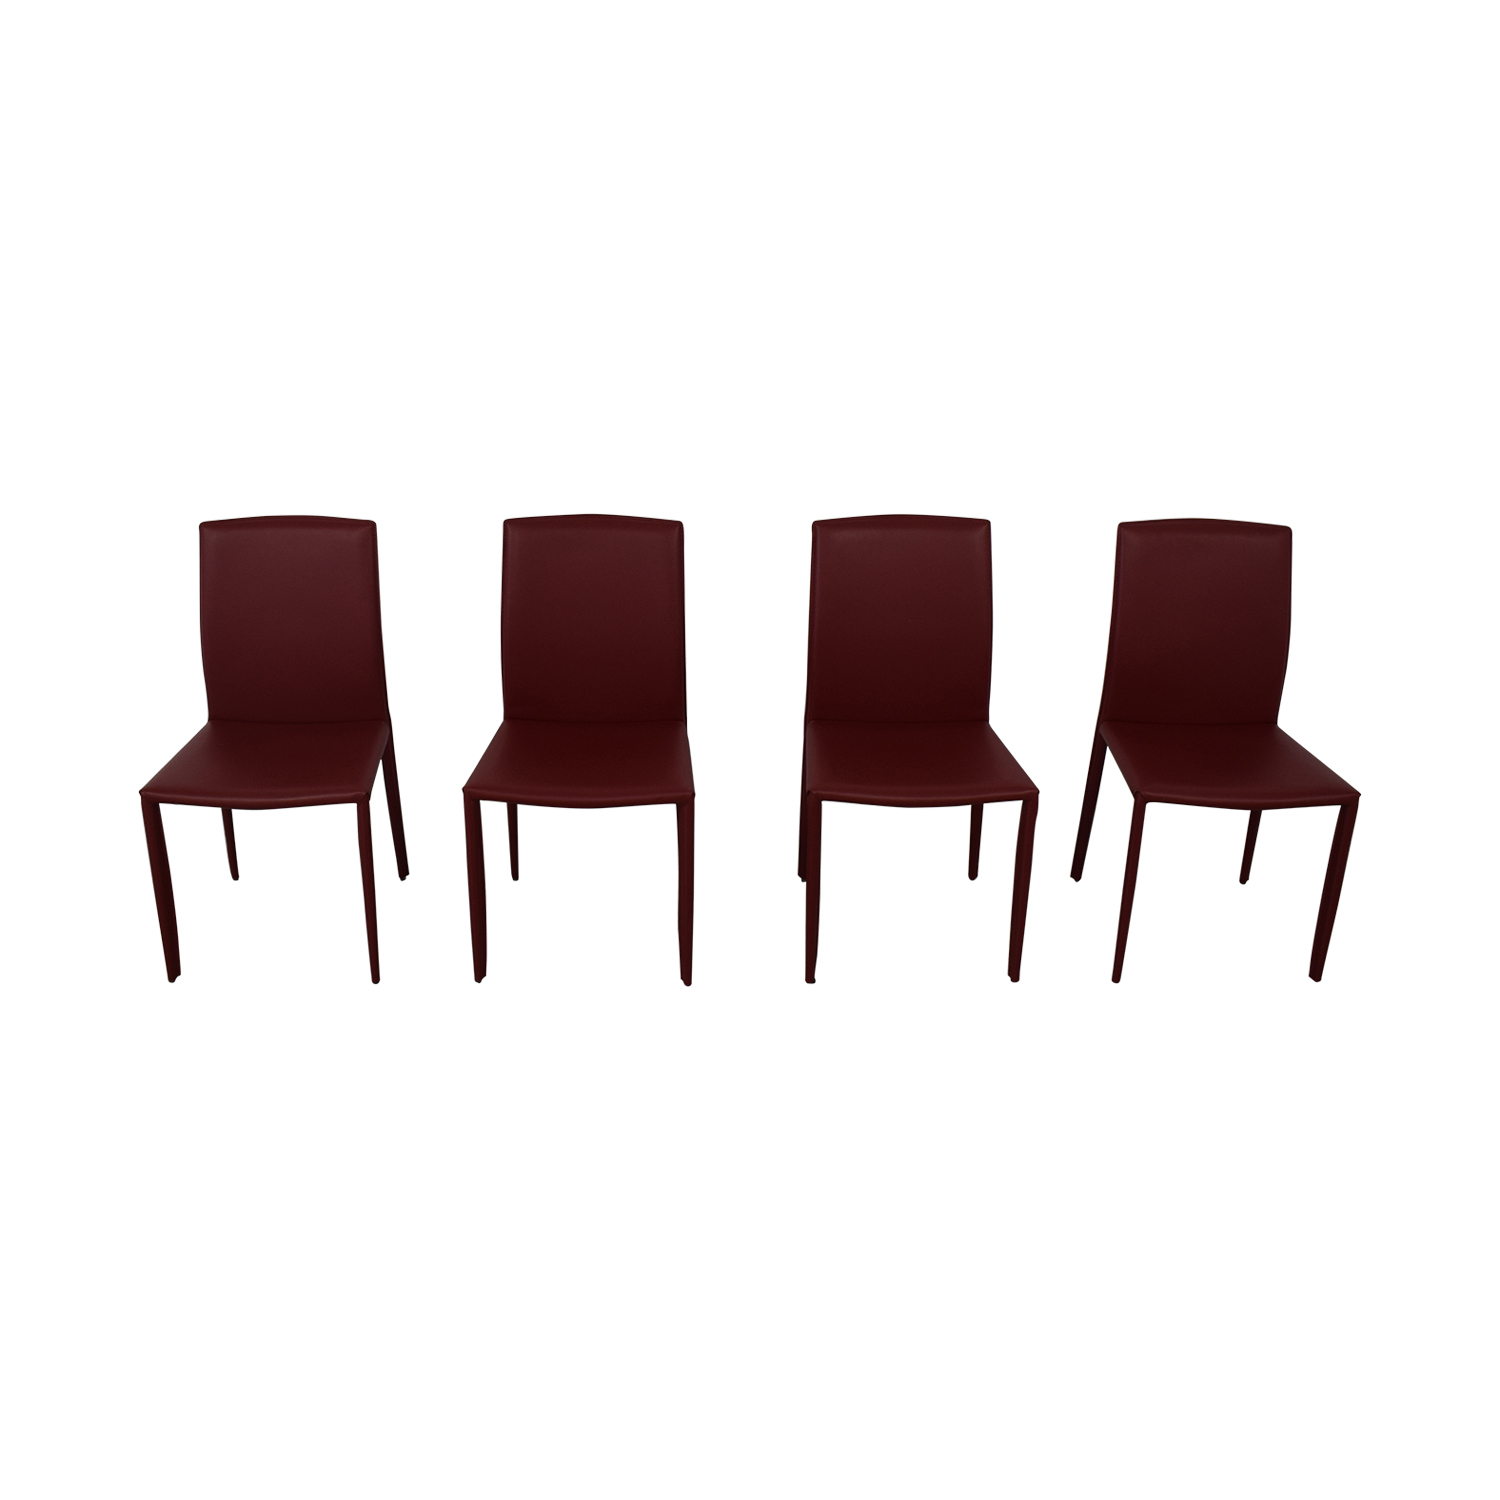 Modloft Modloft Dining Chairs second hand